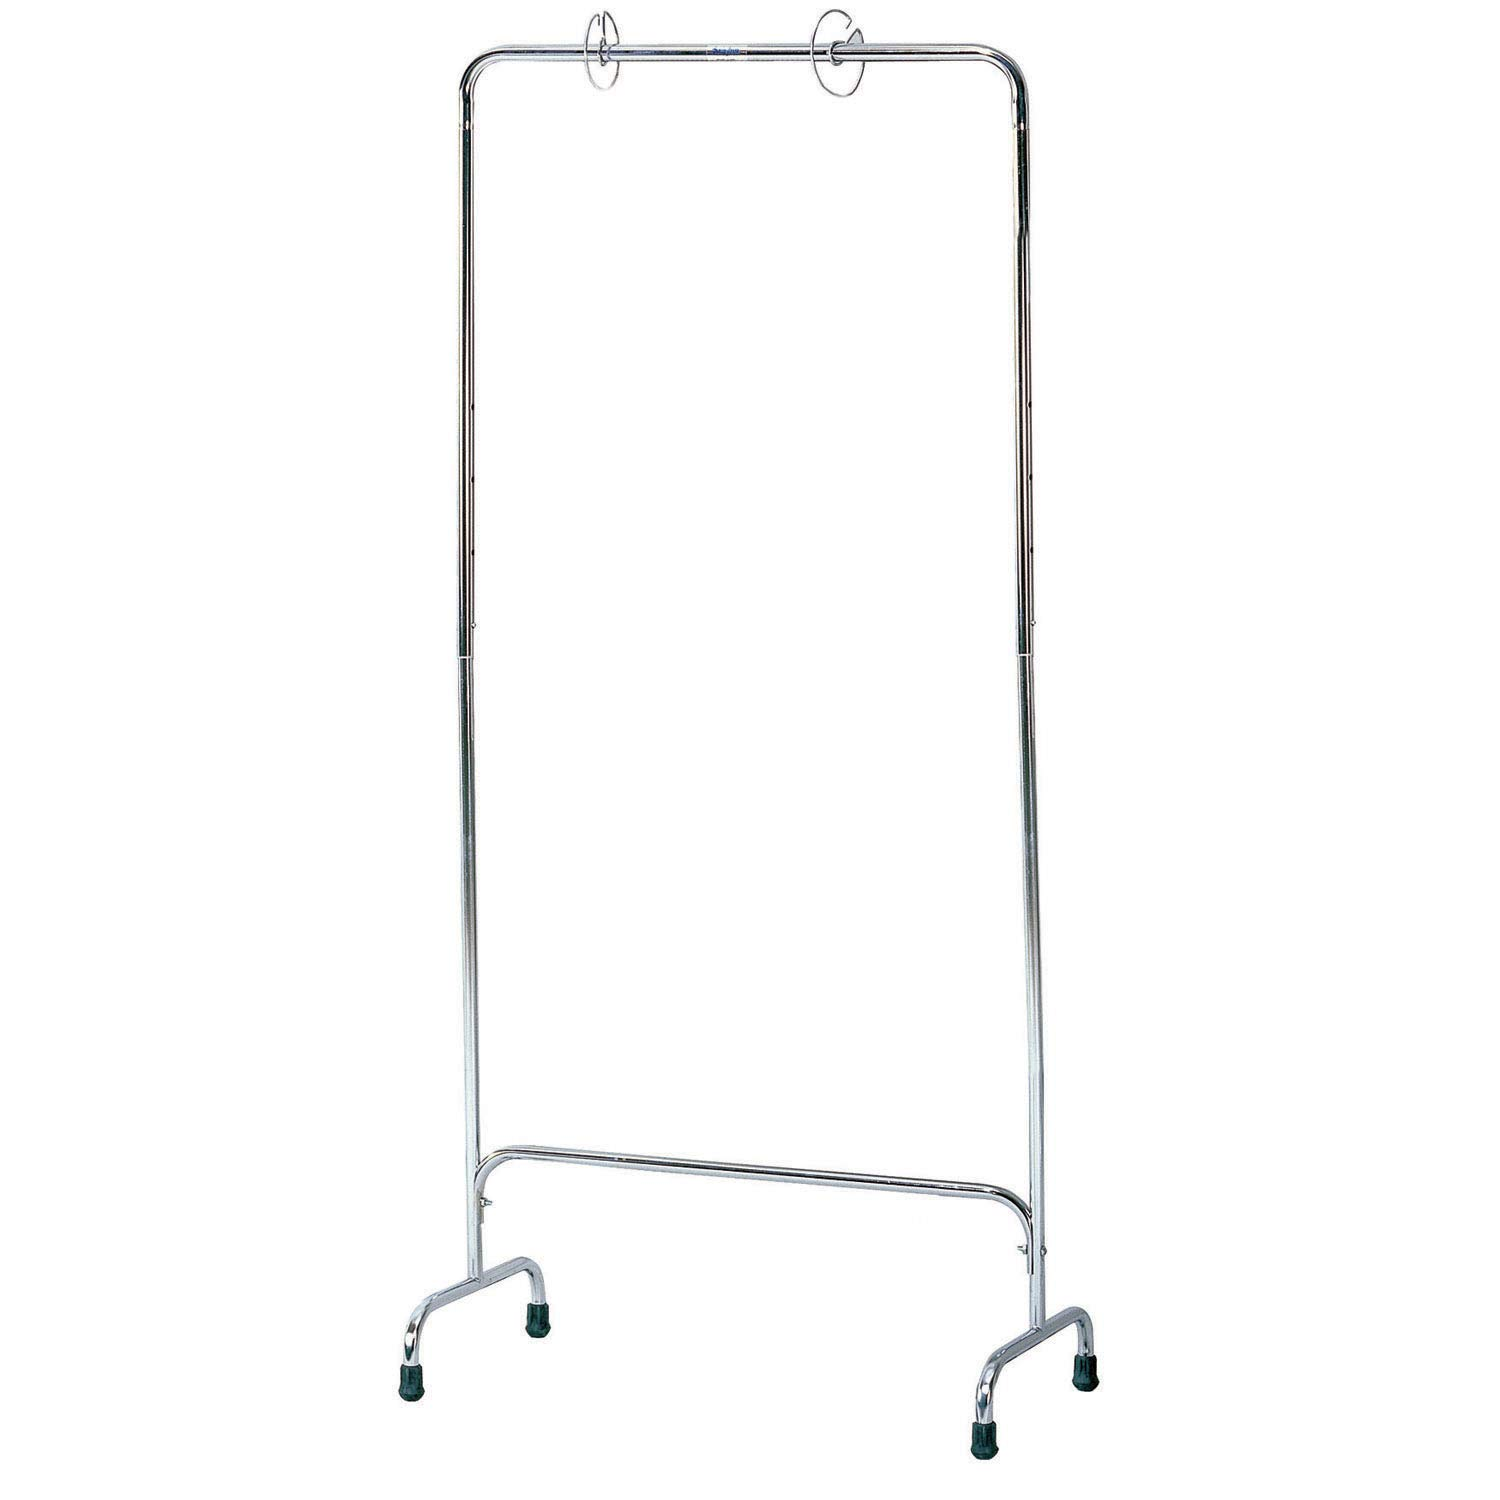 Pacon PAC74410 Chart Stand, Adjustable, Metal, Rubber Tipped Legs, 28'' Wide, 1 Stand